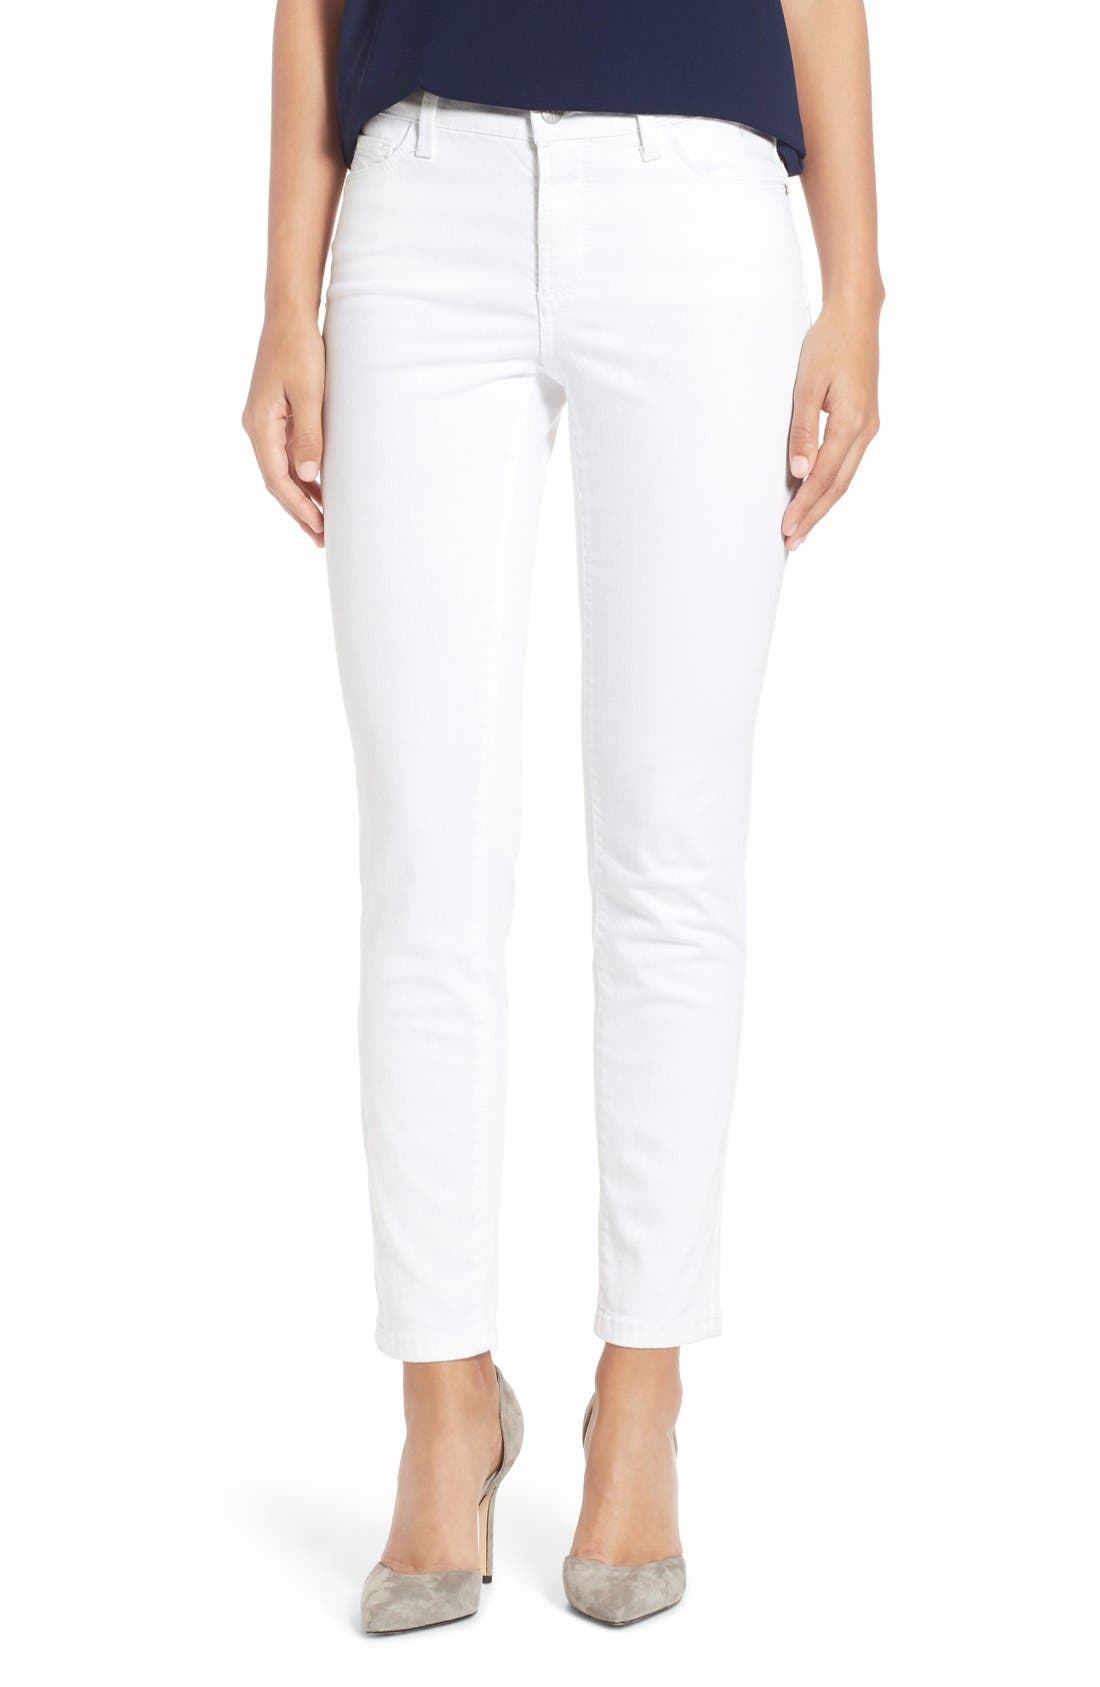 Alternate Image 1 Selected - NYDJ Clarissa Colored Stretch Ankle Skinny Jeans (Regular & Petite)